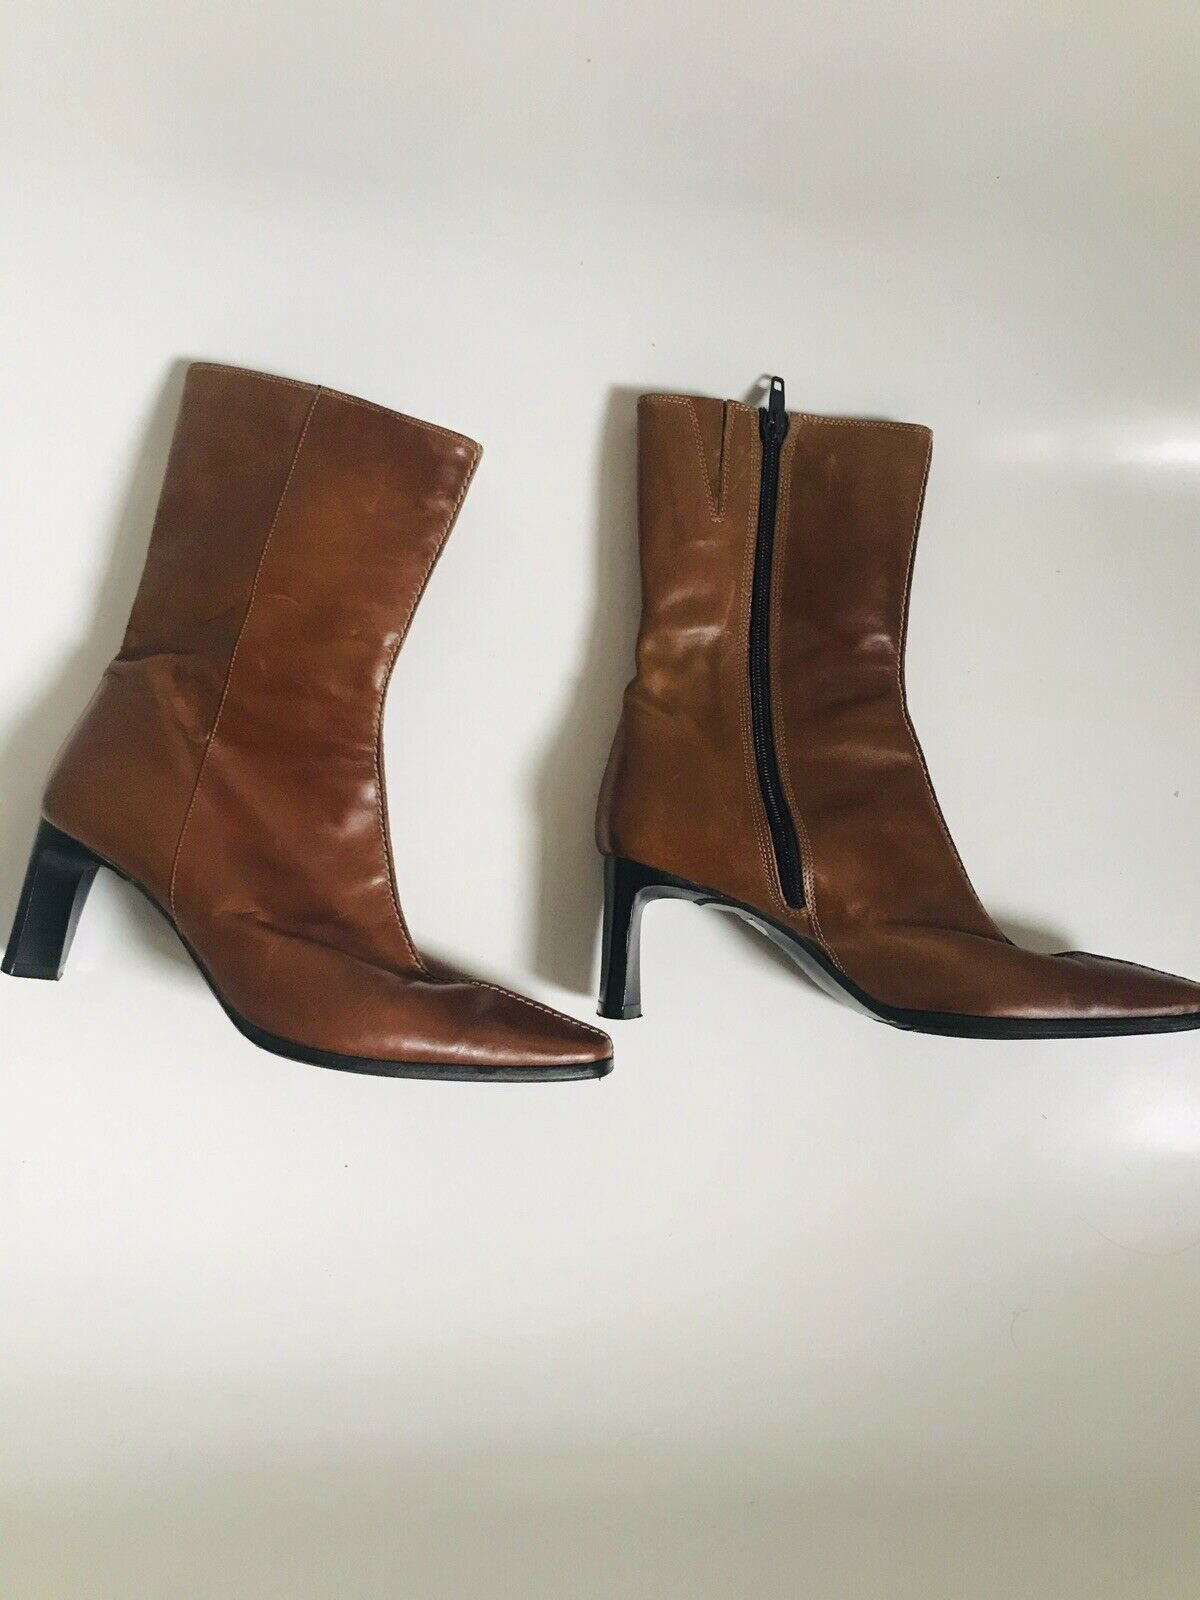 Clarks Elastomere Leather Boots Size 4